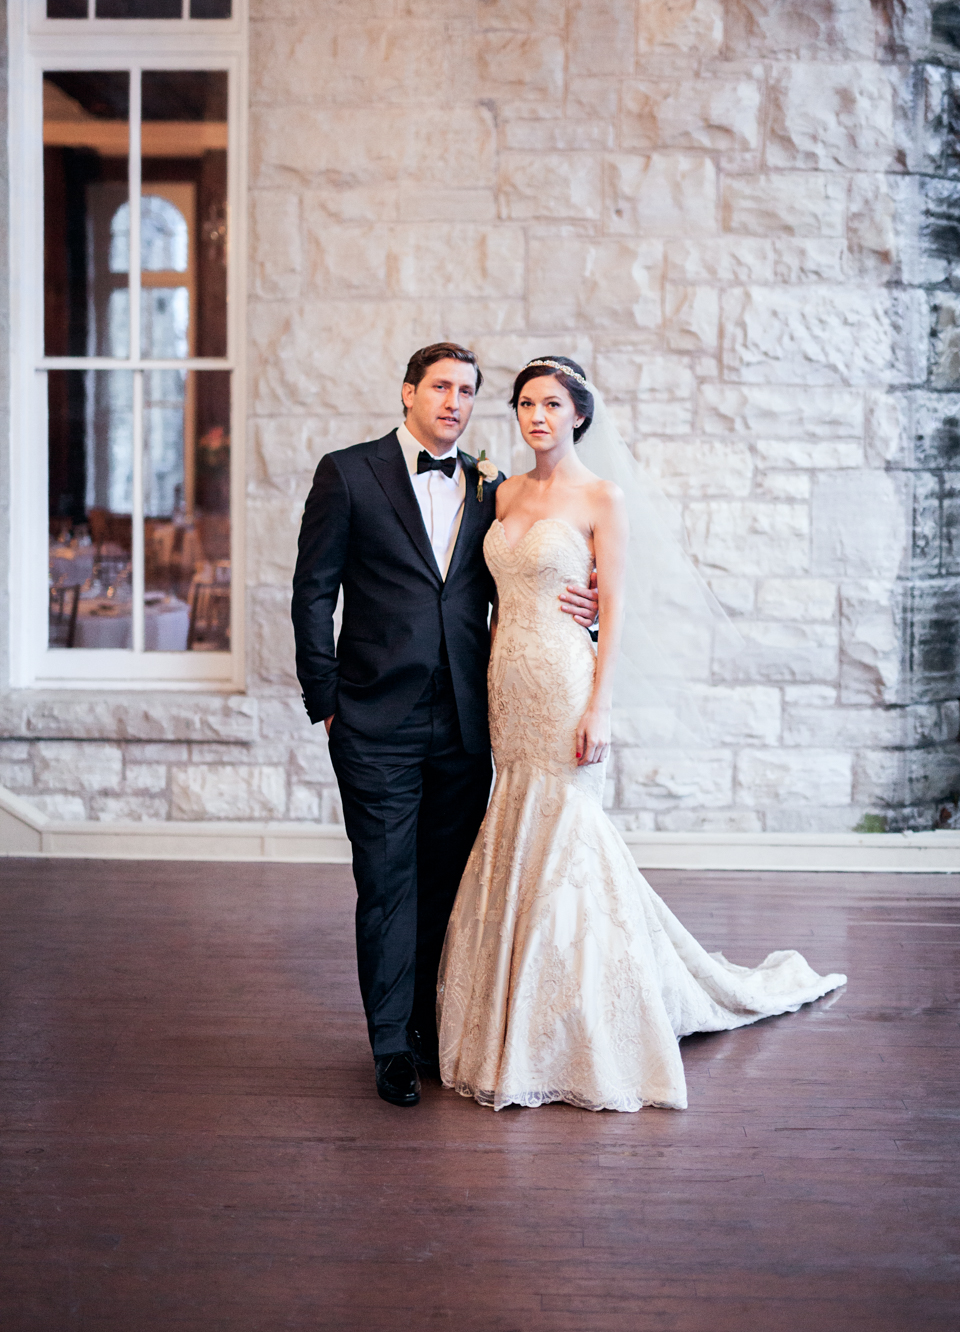 Hatch_And_Maas_Collective_Wedding_Photographers_Fayetteville_Arkansas_043